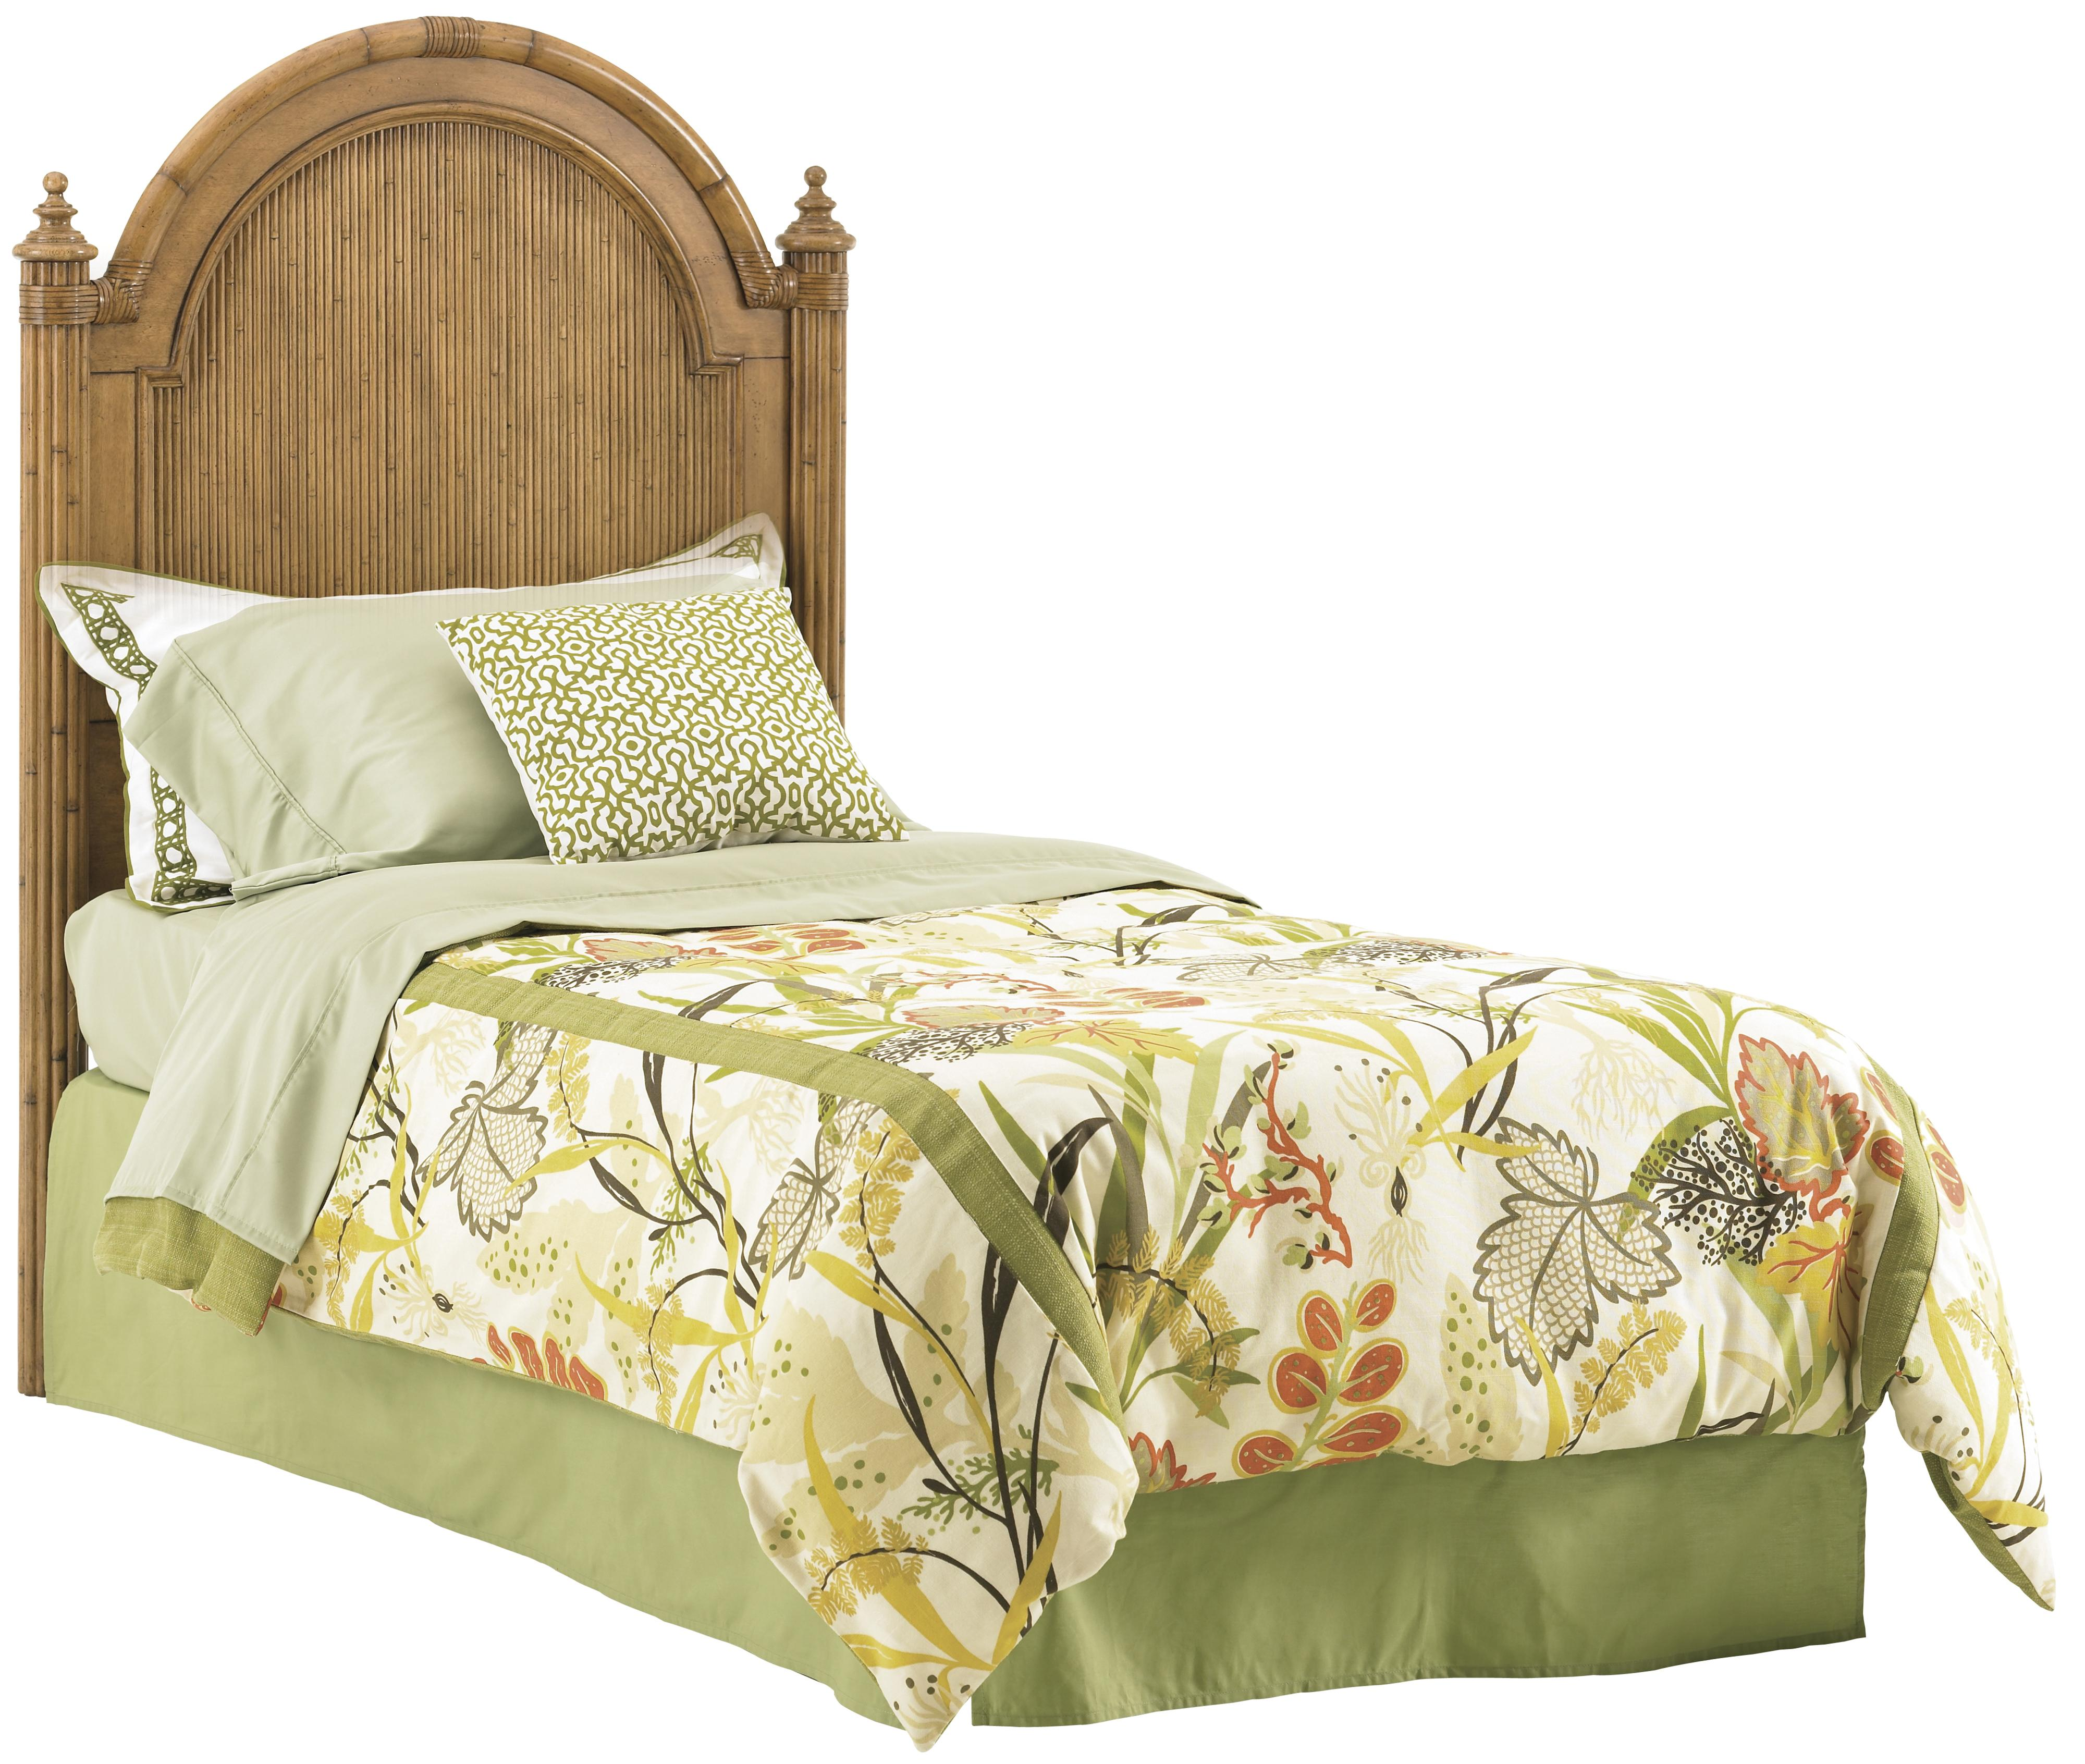 Tommy Bahama Home Beach House King Belle Isle Headboard - Item Number: 540-134HB